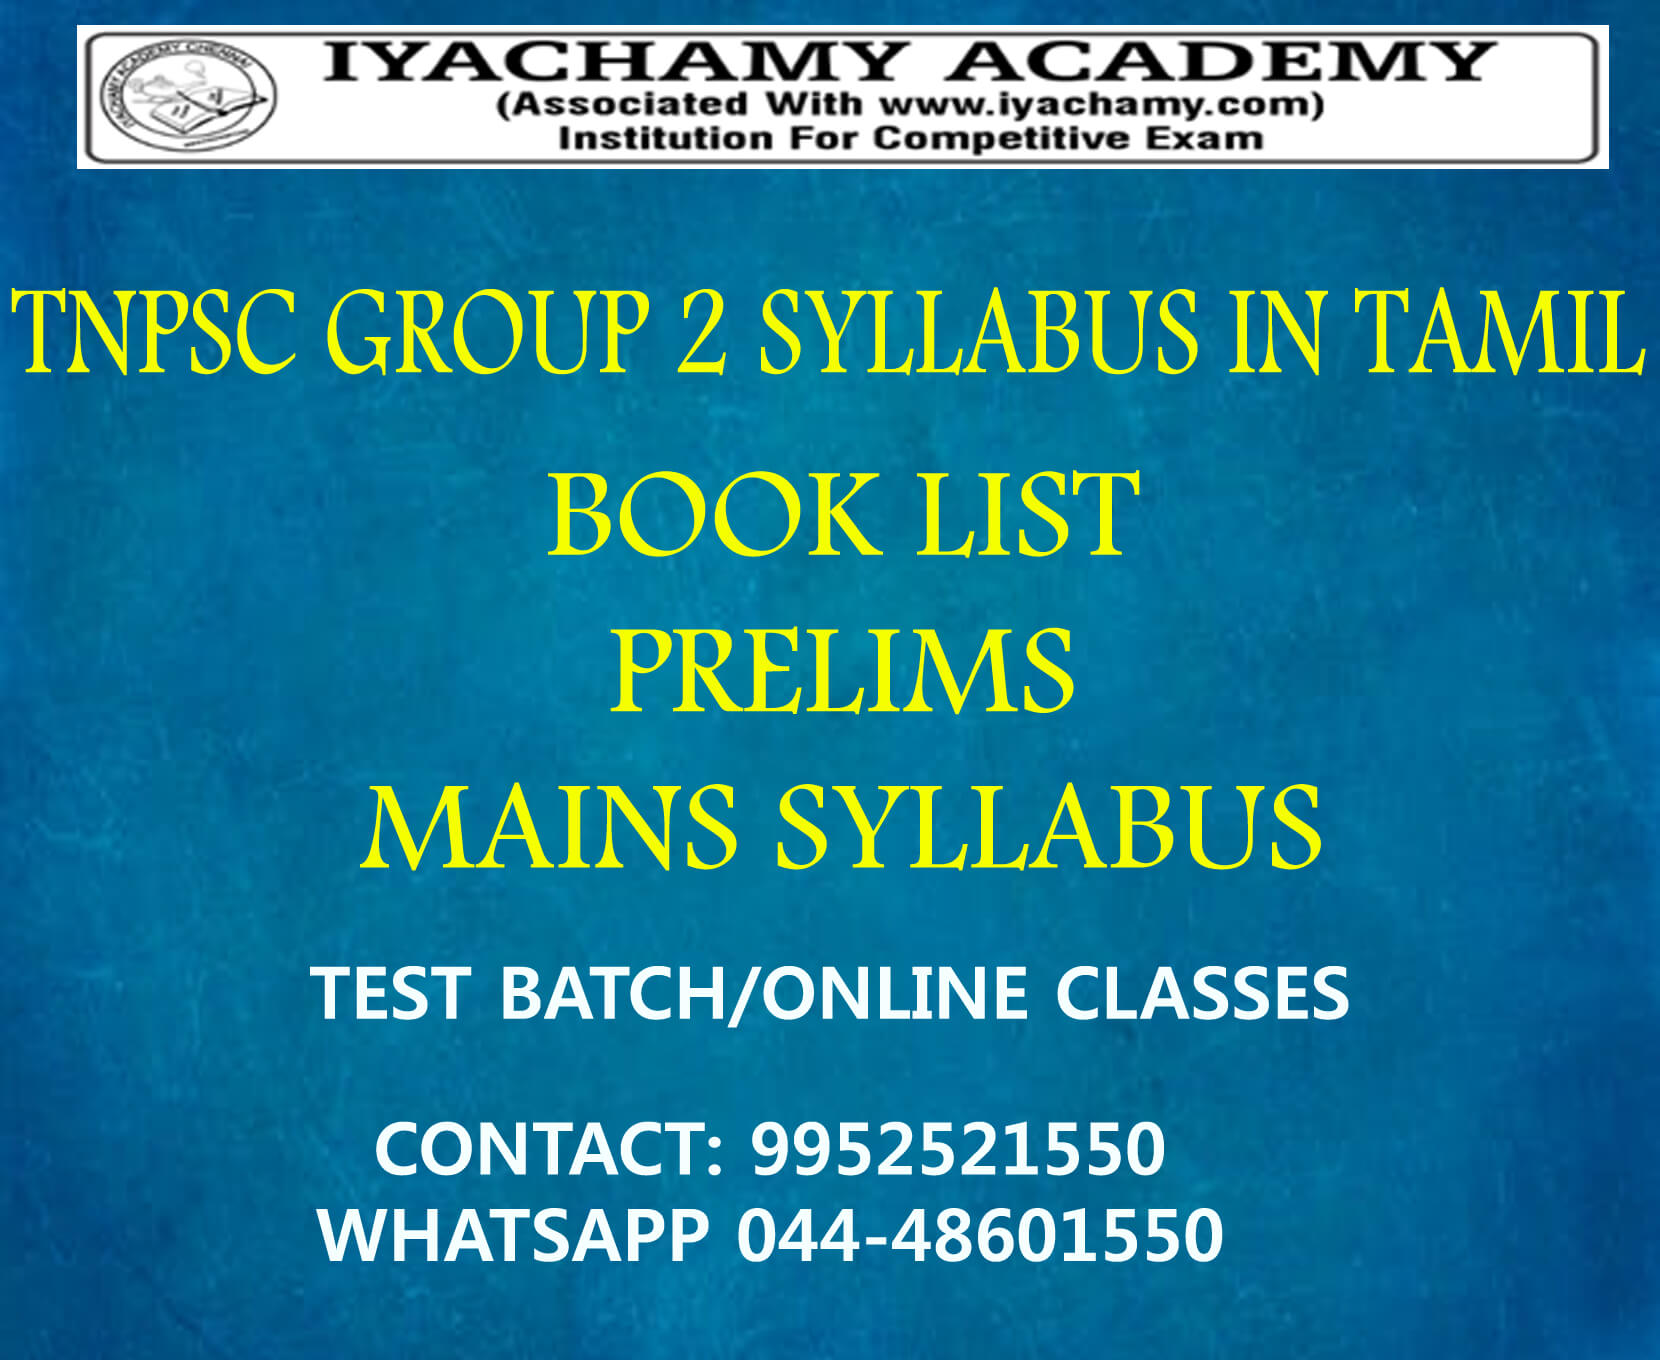 TNPSC GROUP 2 PRELIMS AND MAINS SYLLABUS IN TAMIL PDF | ENGLISH